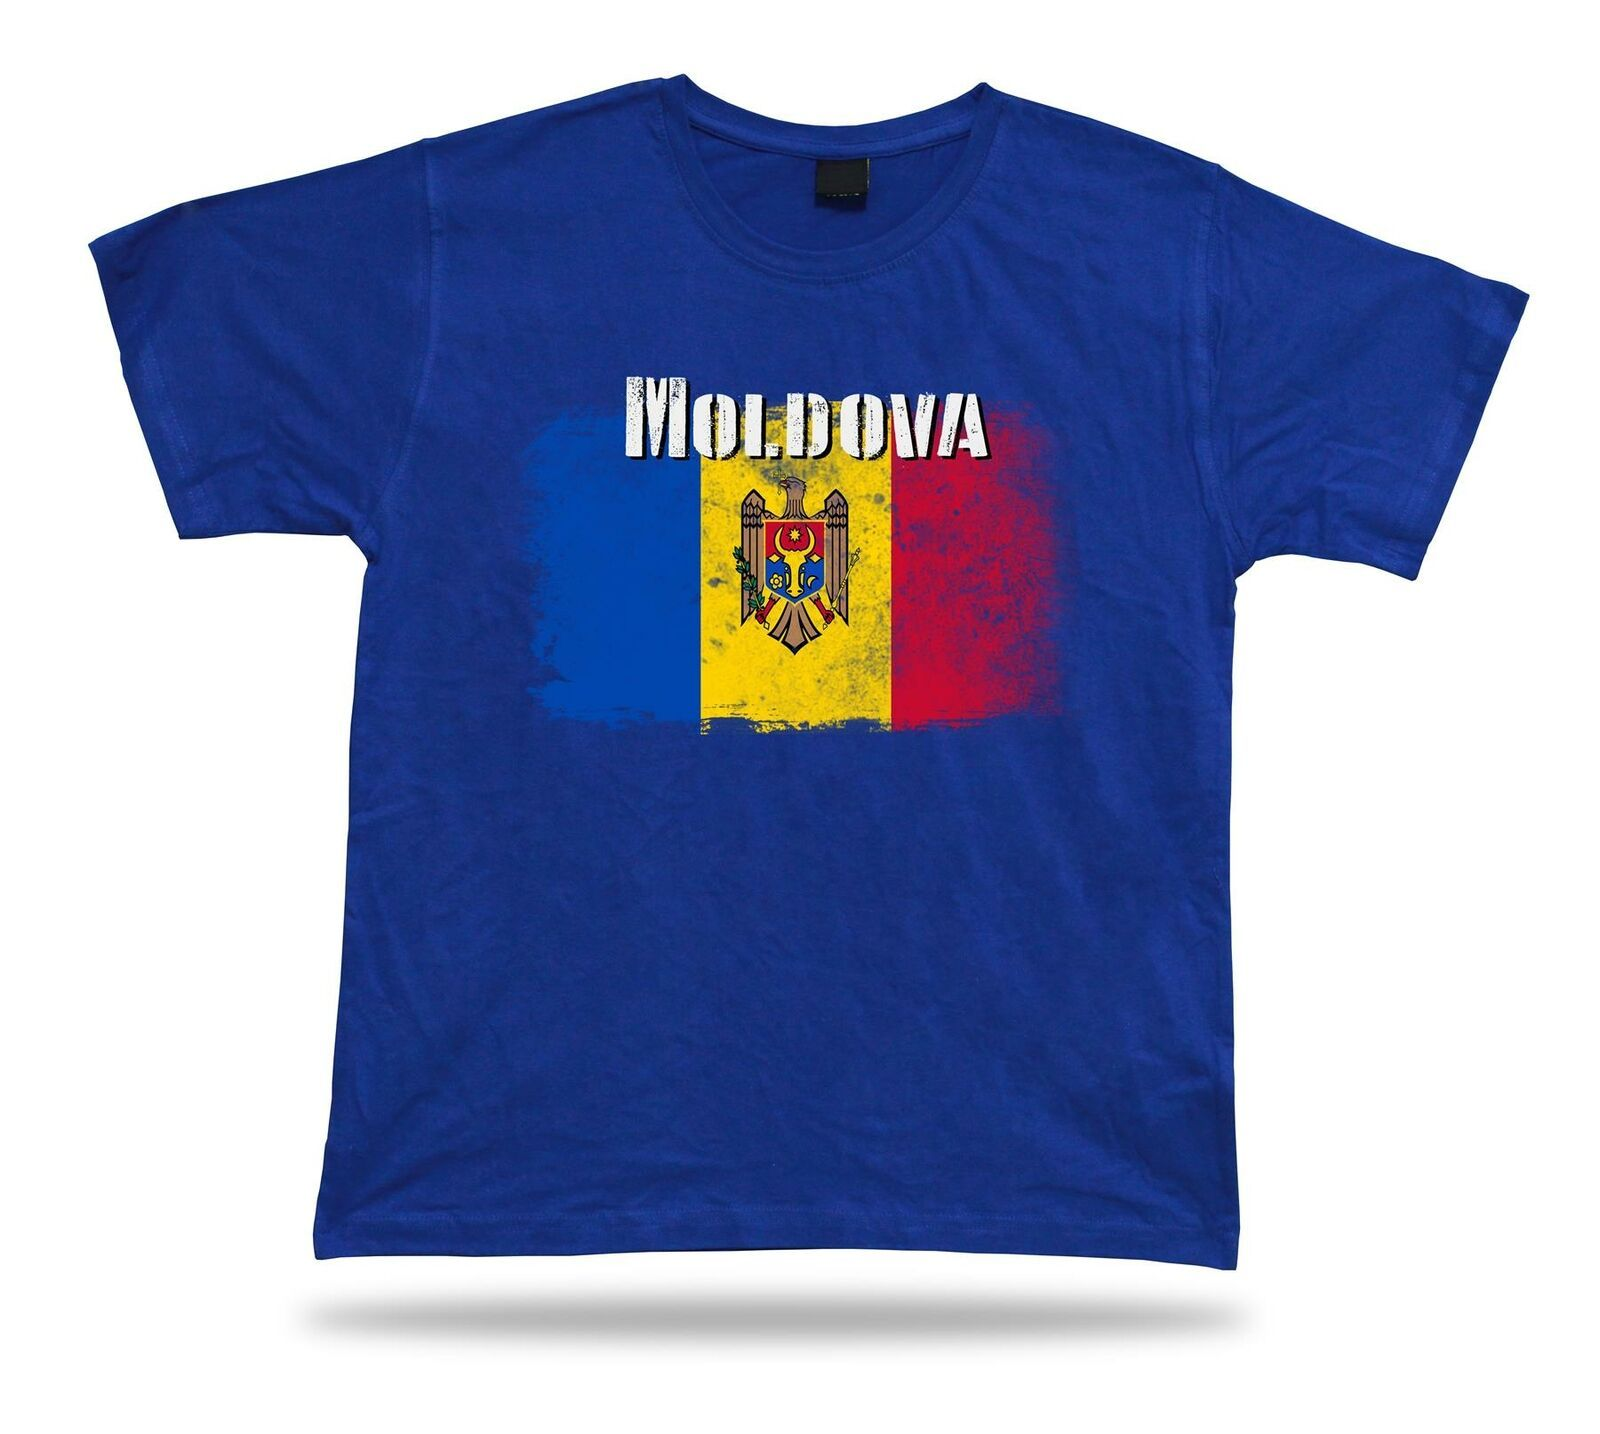 Primary image for Moldova flag Tshirt T-shirt Tee top city map king of the skies crossed eagle